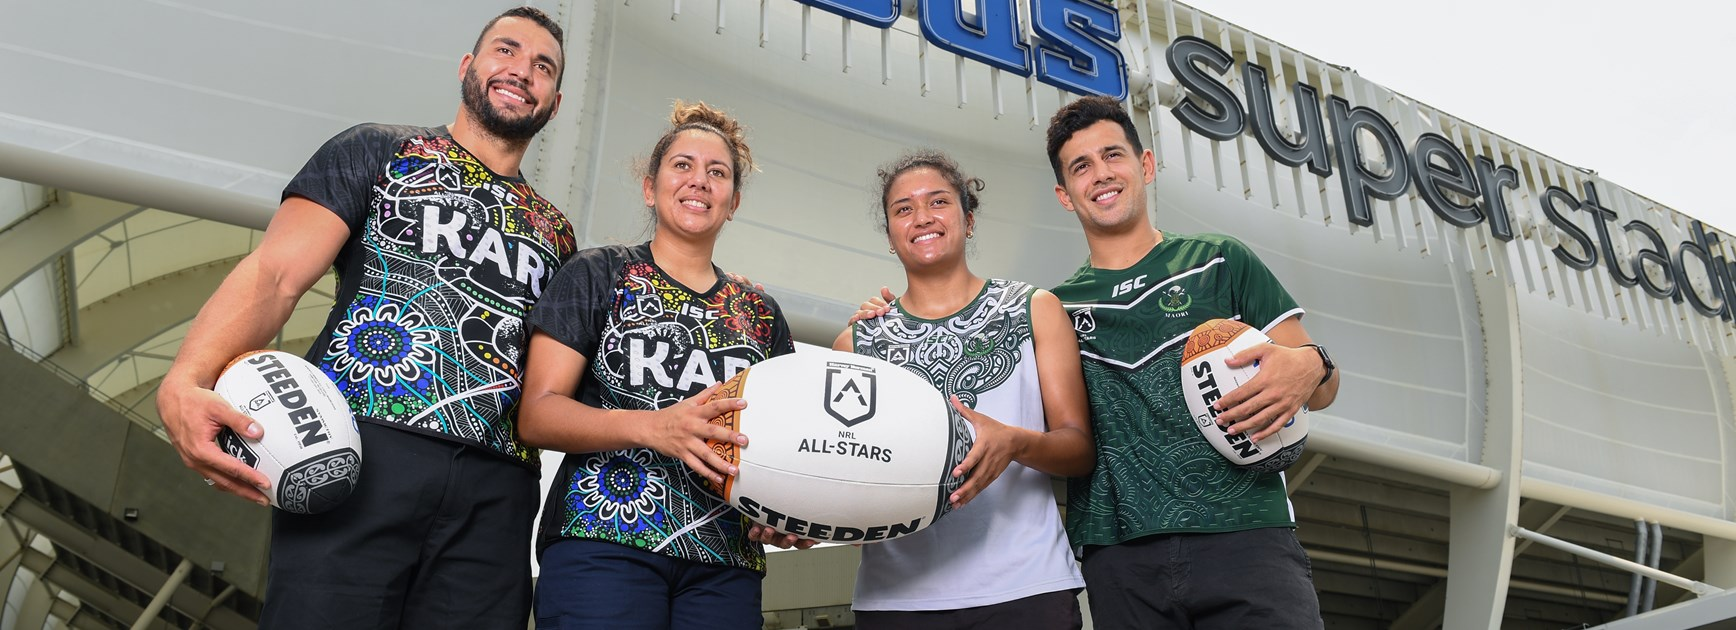 Talisha Harden, Ryan James, Jordan Kahu and Zahara Temara at the launch of the 2020 All Stars.